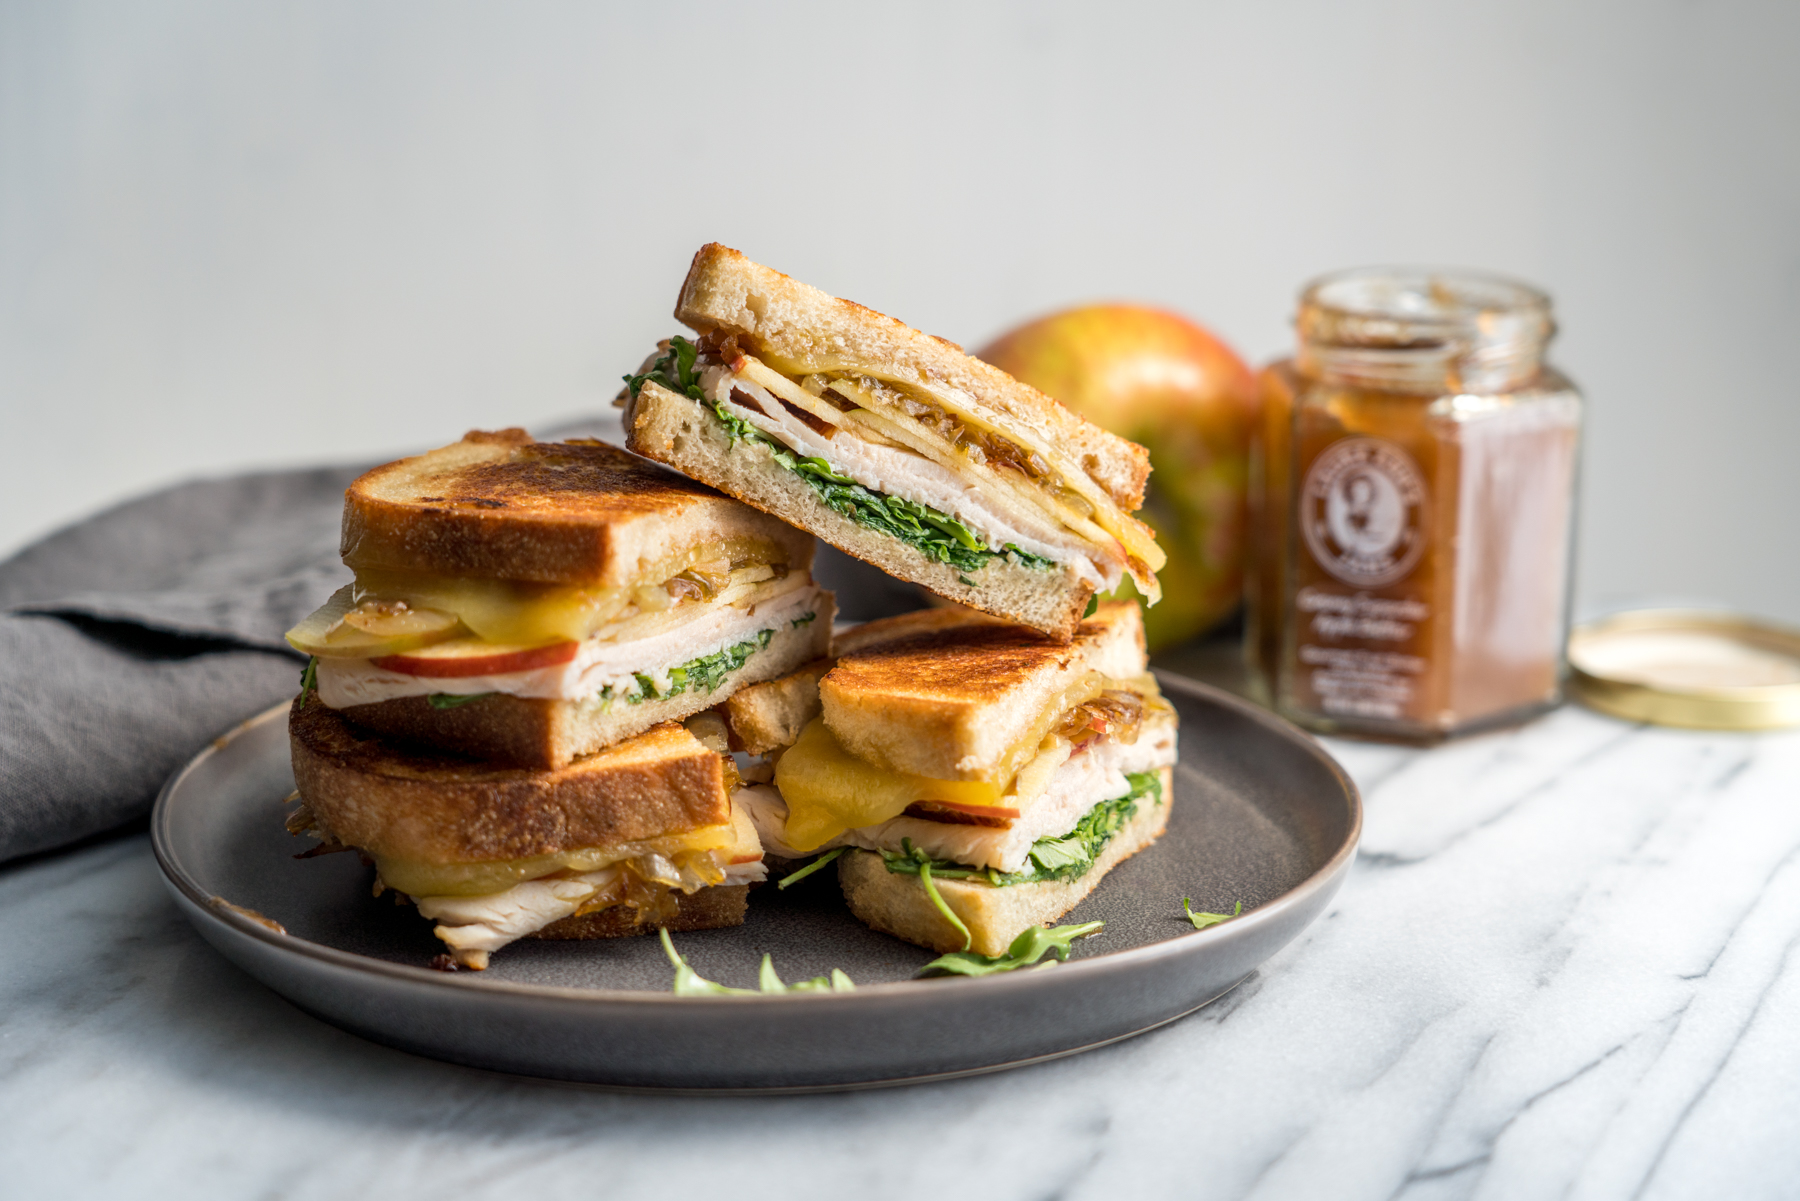 Apple and Turkey Grilled Cheese with Caramelized Shallots, by Bruchographers